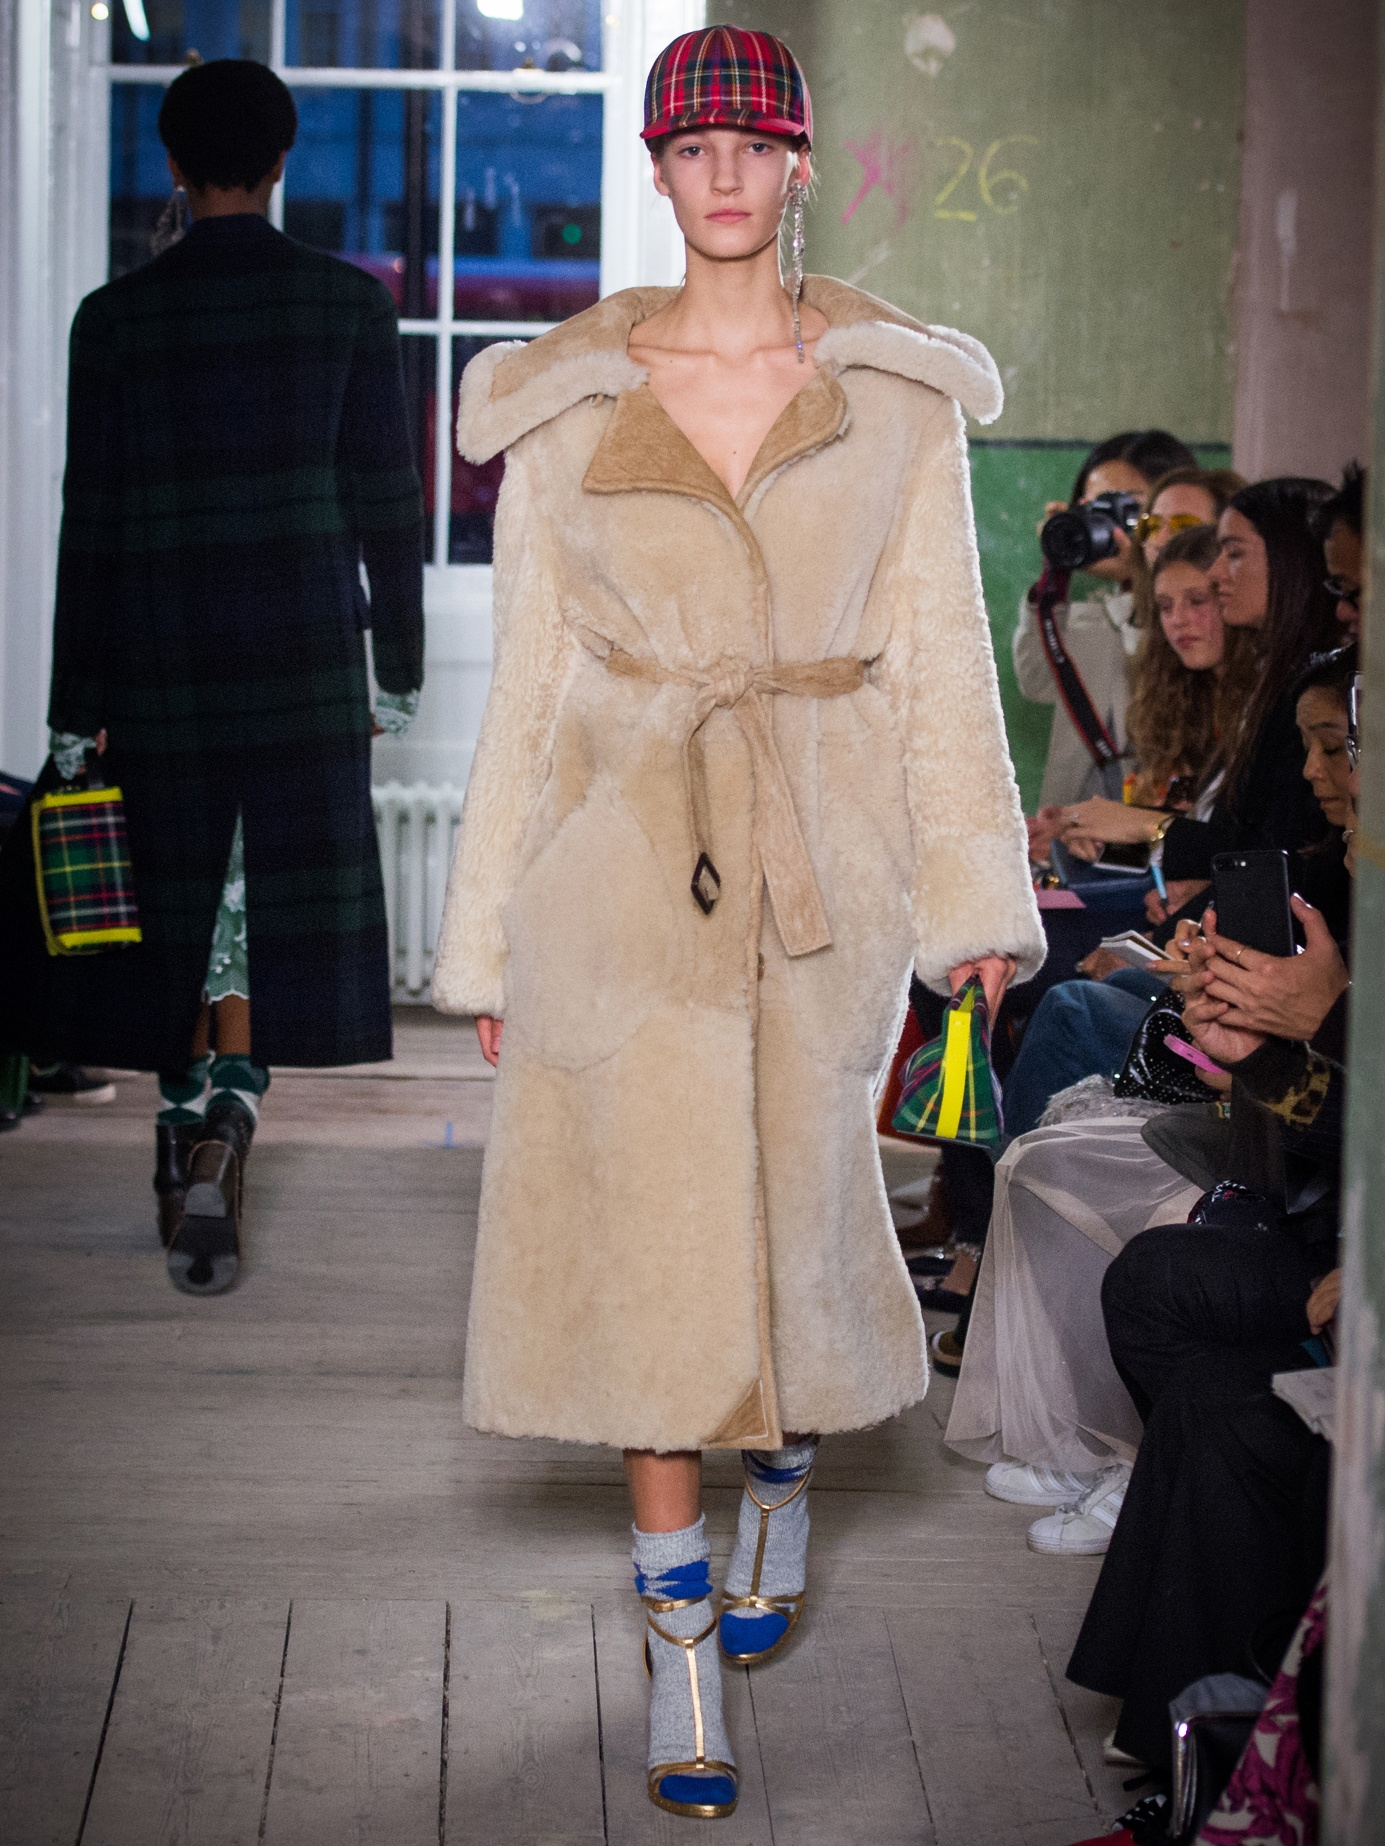 Burberry And Its Coats − A Love Story